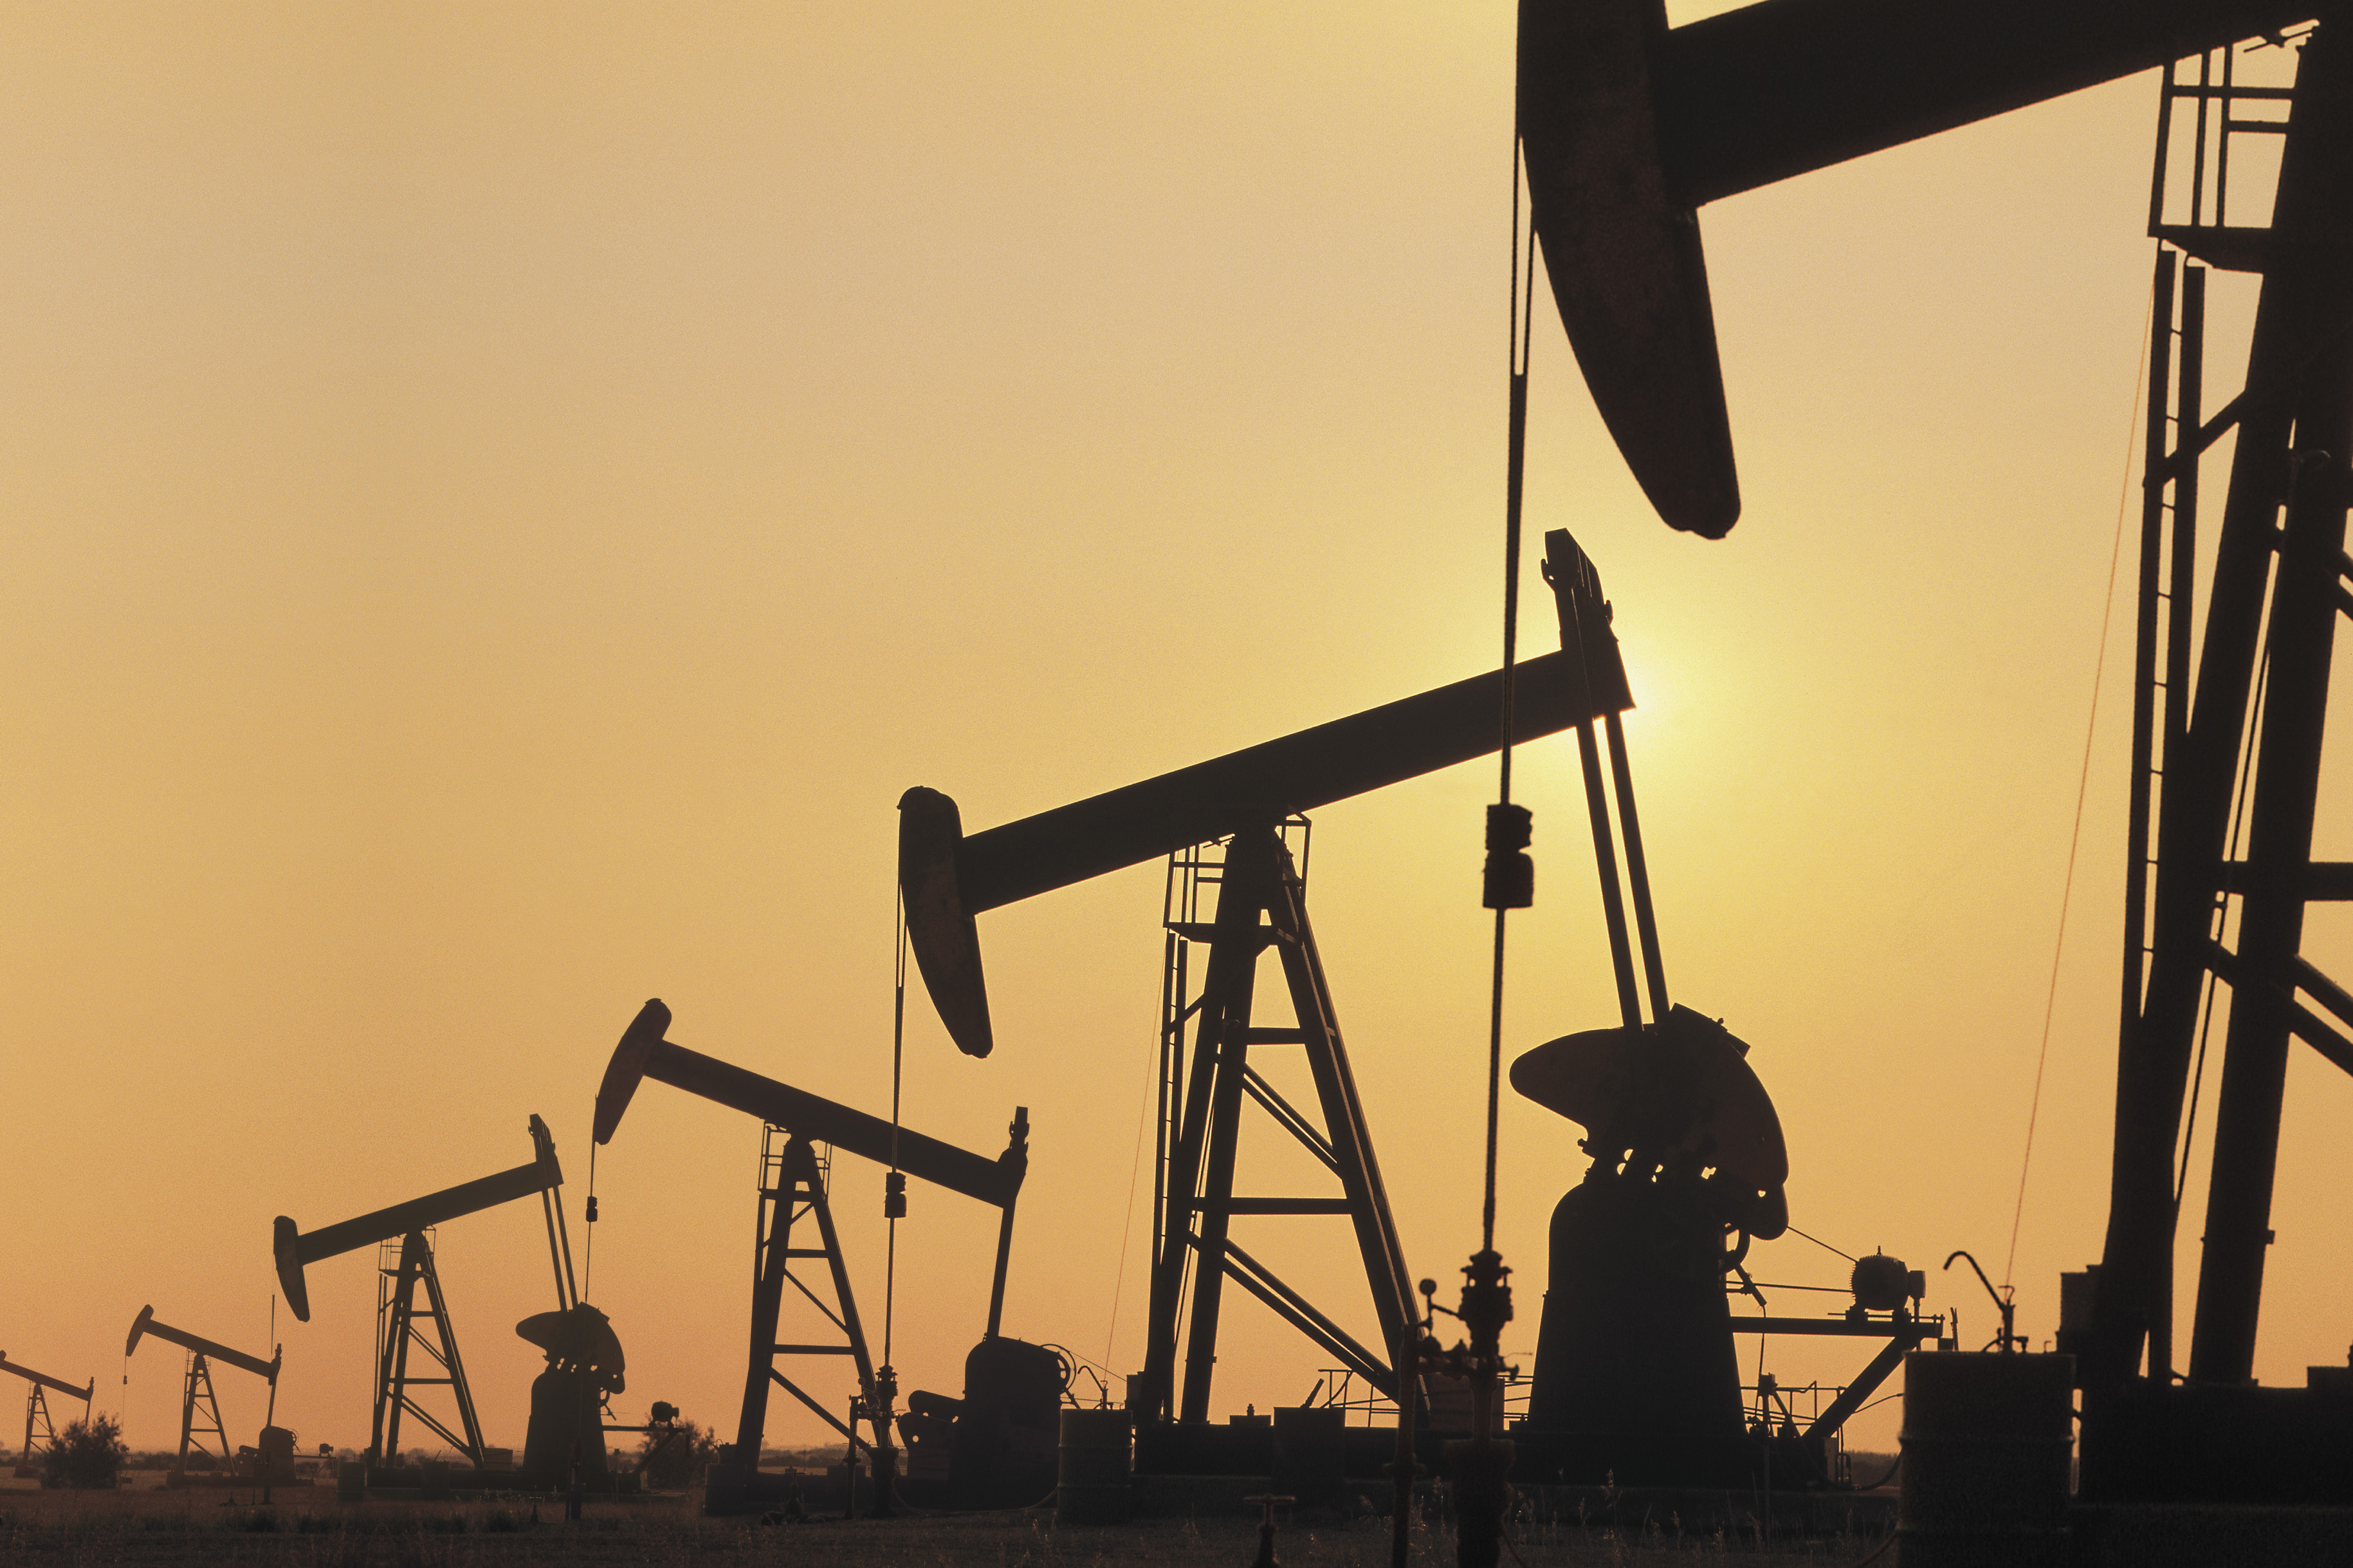 What are the most common reasons for oilfield accidents?